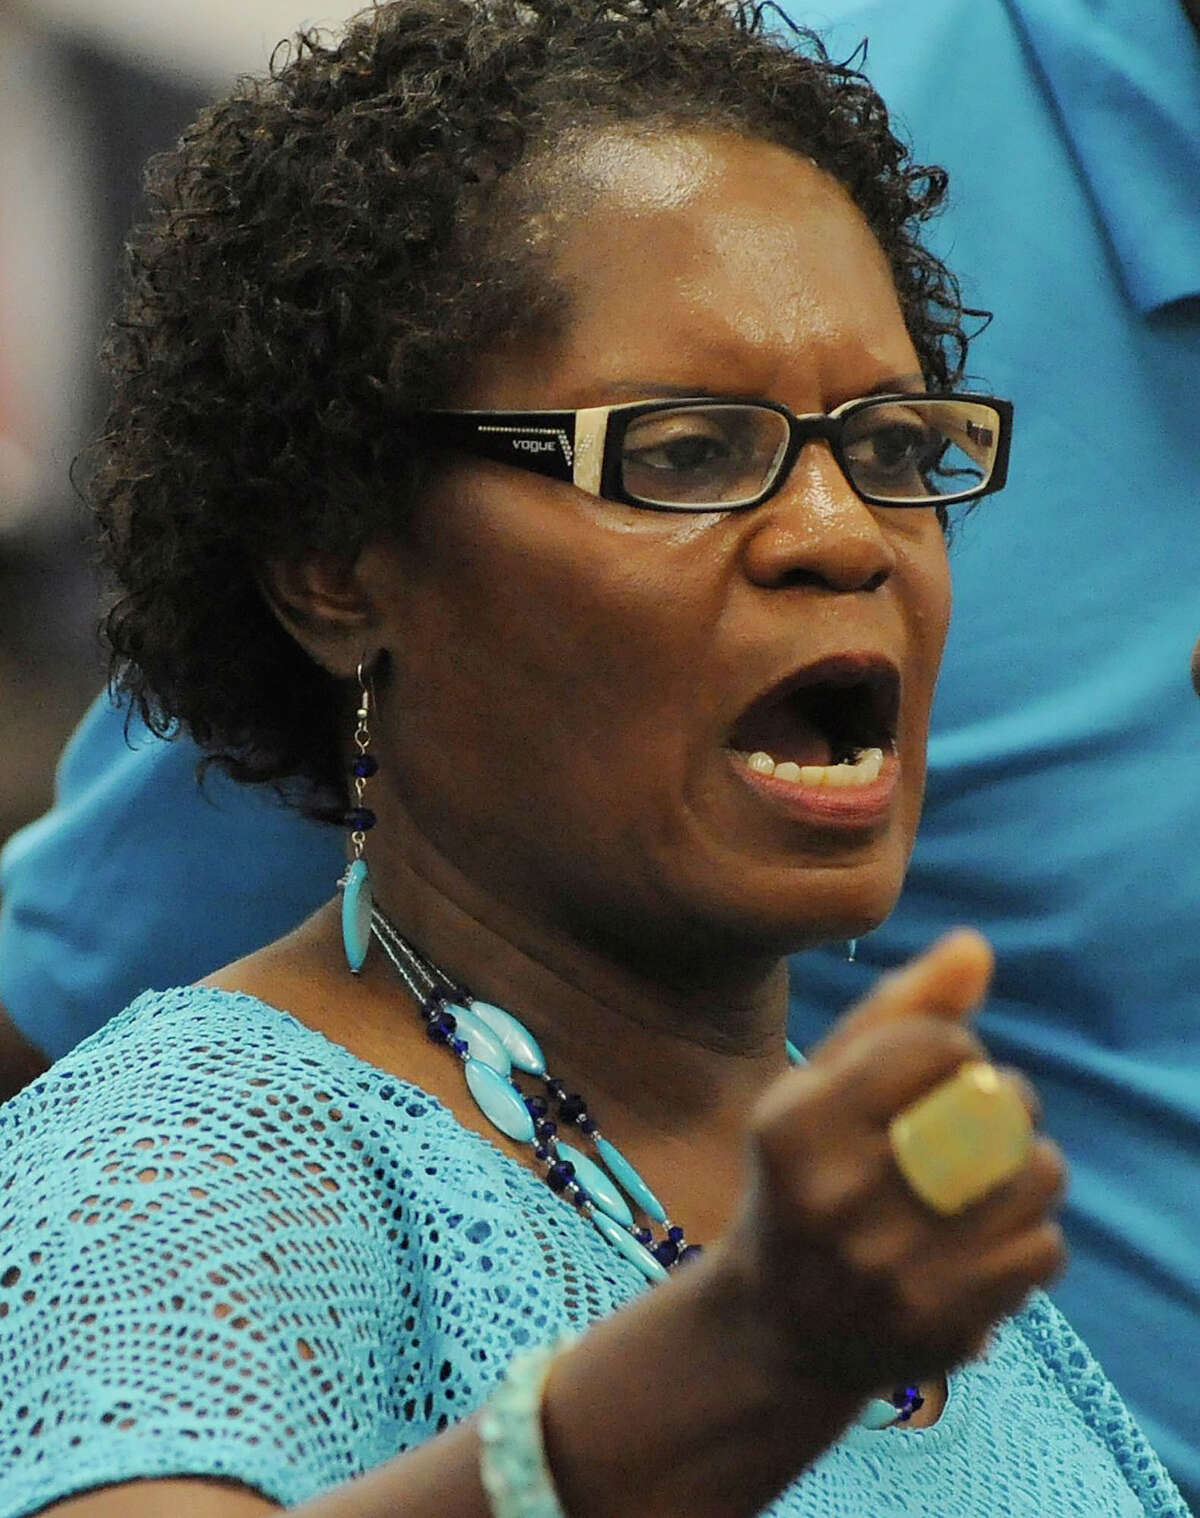 Church bombing survivor Sarah Collins Rudolph speaks to Alabama's parole board in opposition of an early release for convicted bomber Thomas Blanton Jr. on Wednesday, Aug. 3, 2016. Rudolph, who was badly injured in the bombing, which killed her sister Addie Mae Collins, urged the board to keep Blanton behind bars. (AP Photo/Jay Reeves)